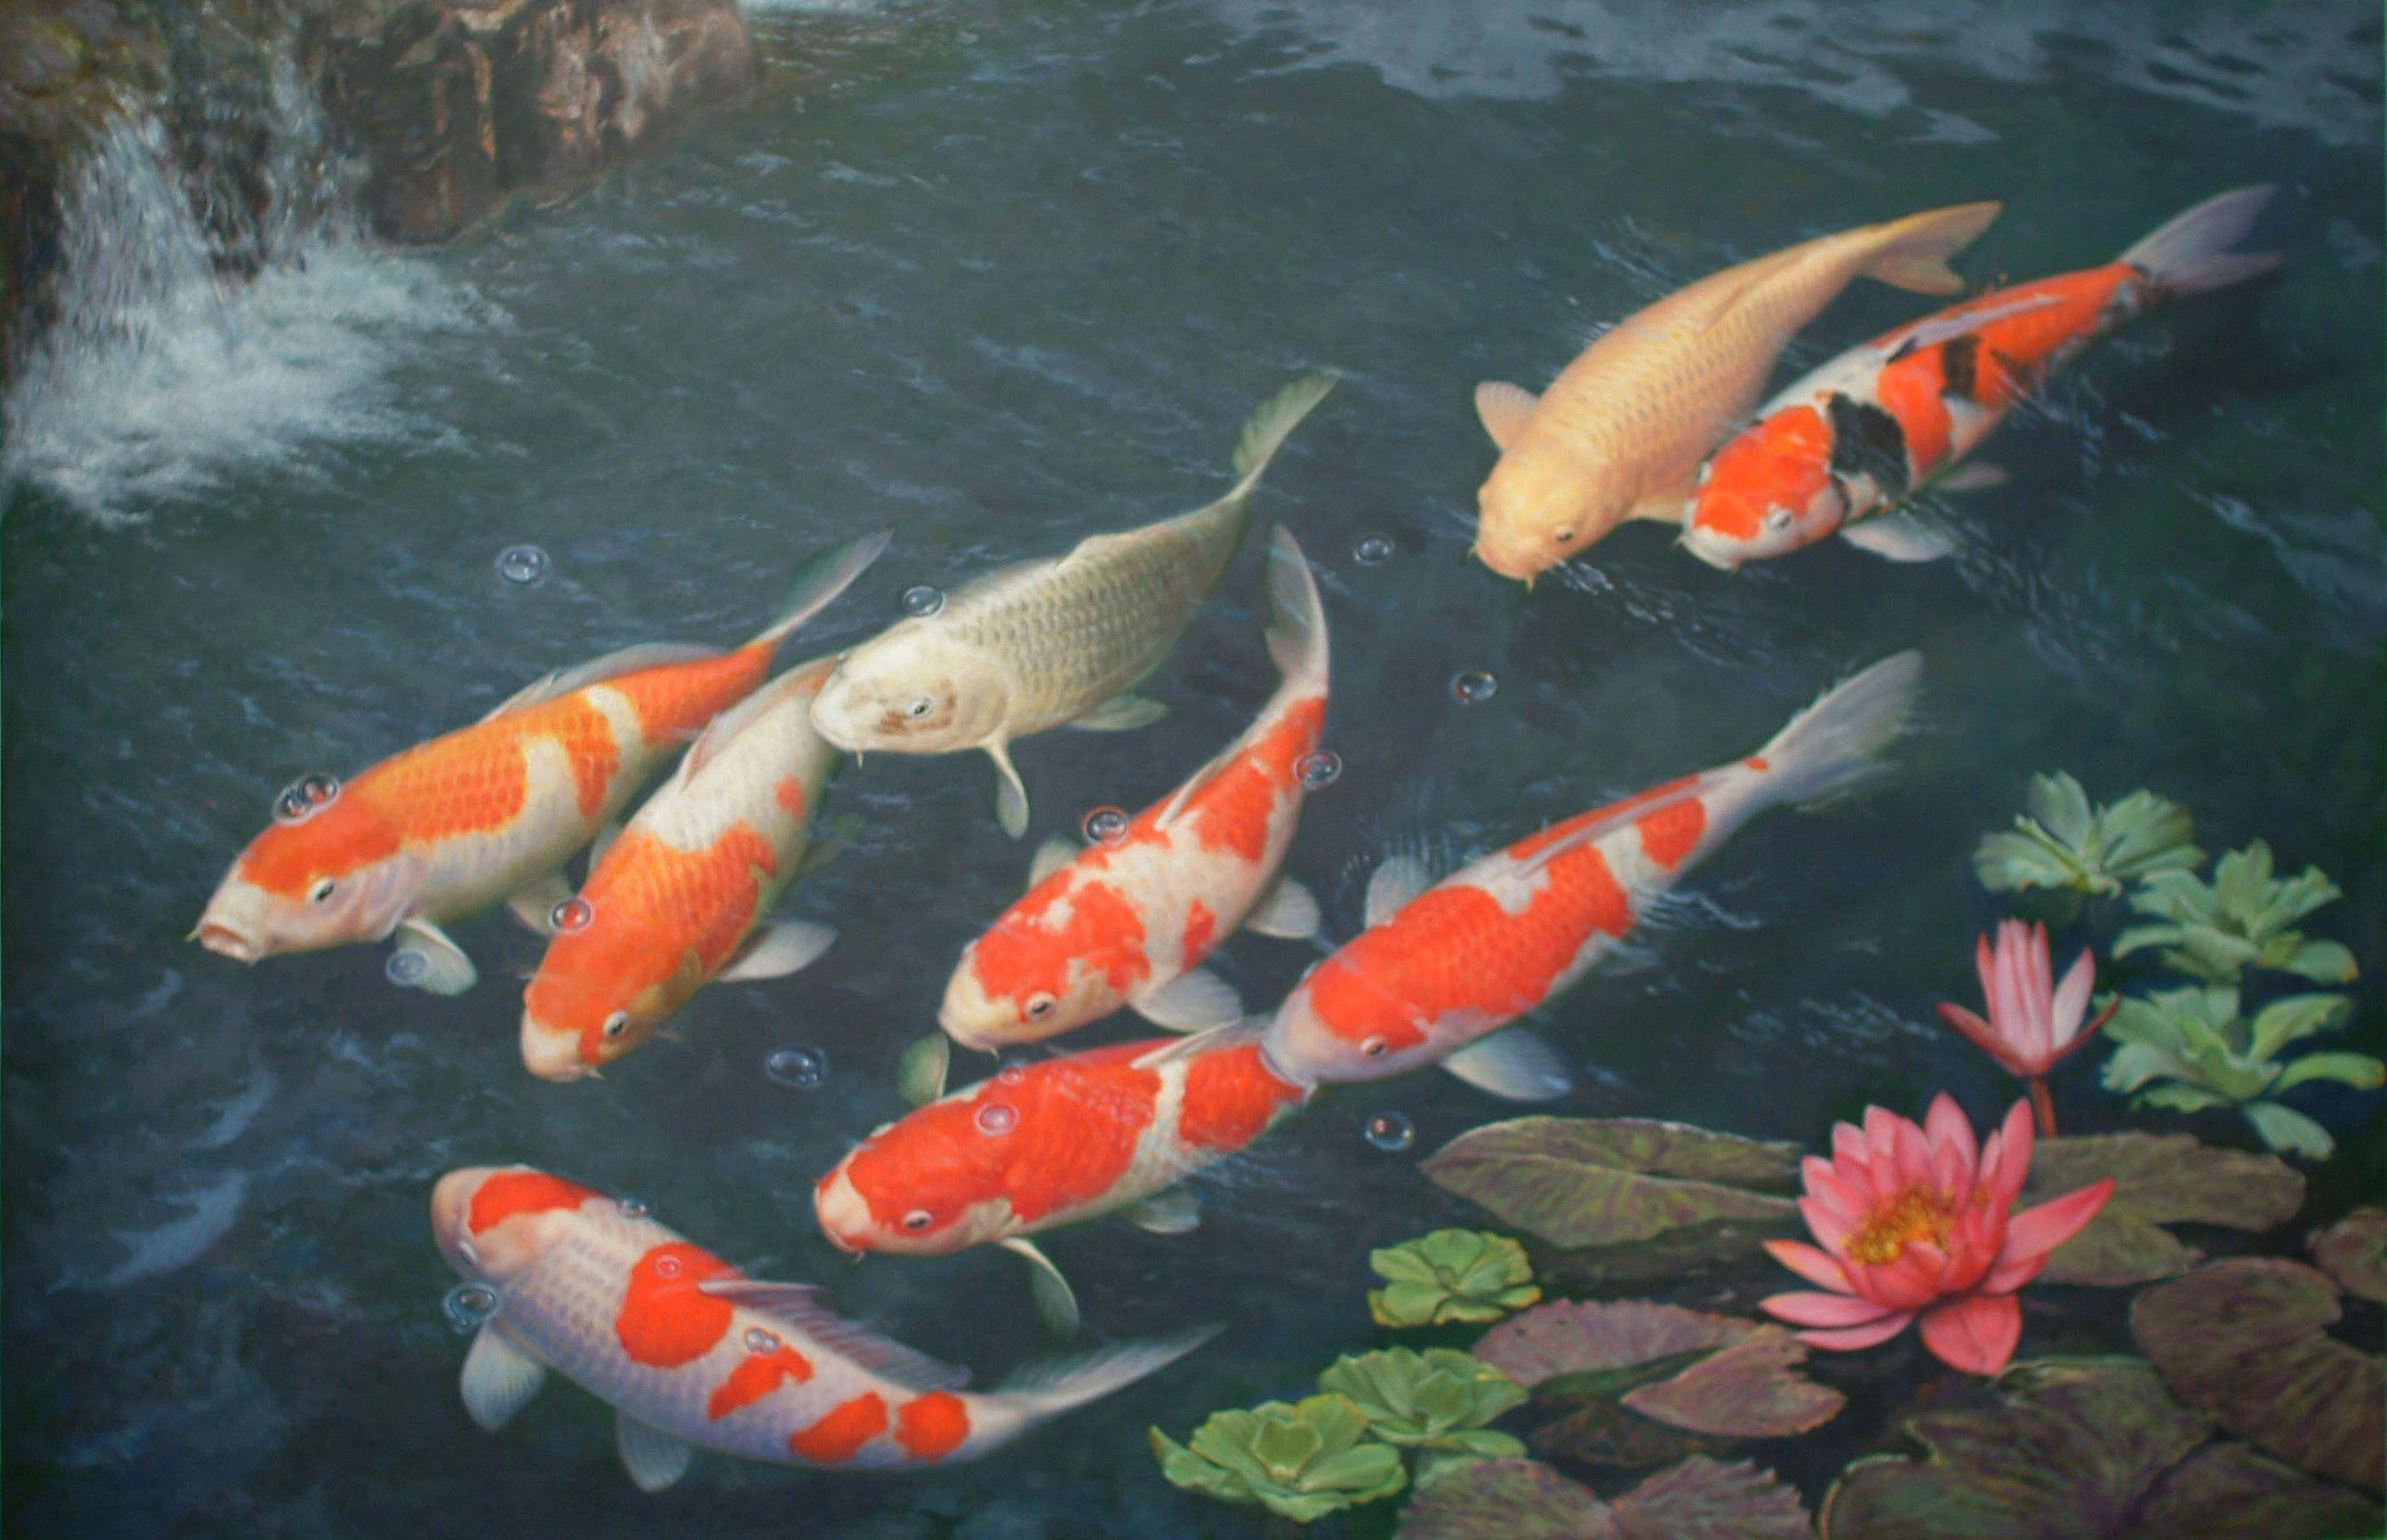 Koi fish wallpapers wallpaper cave for Fish pond images